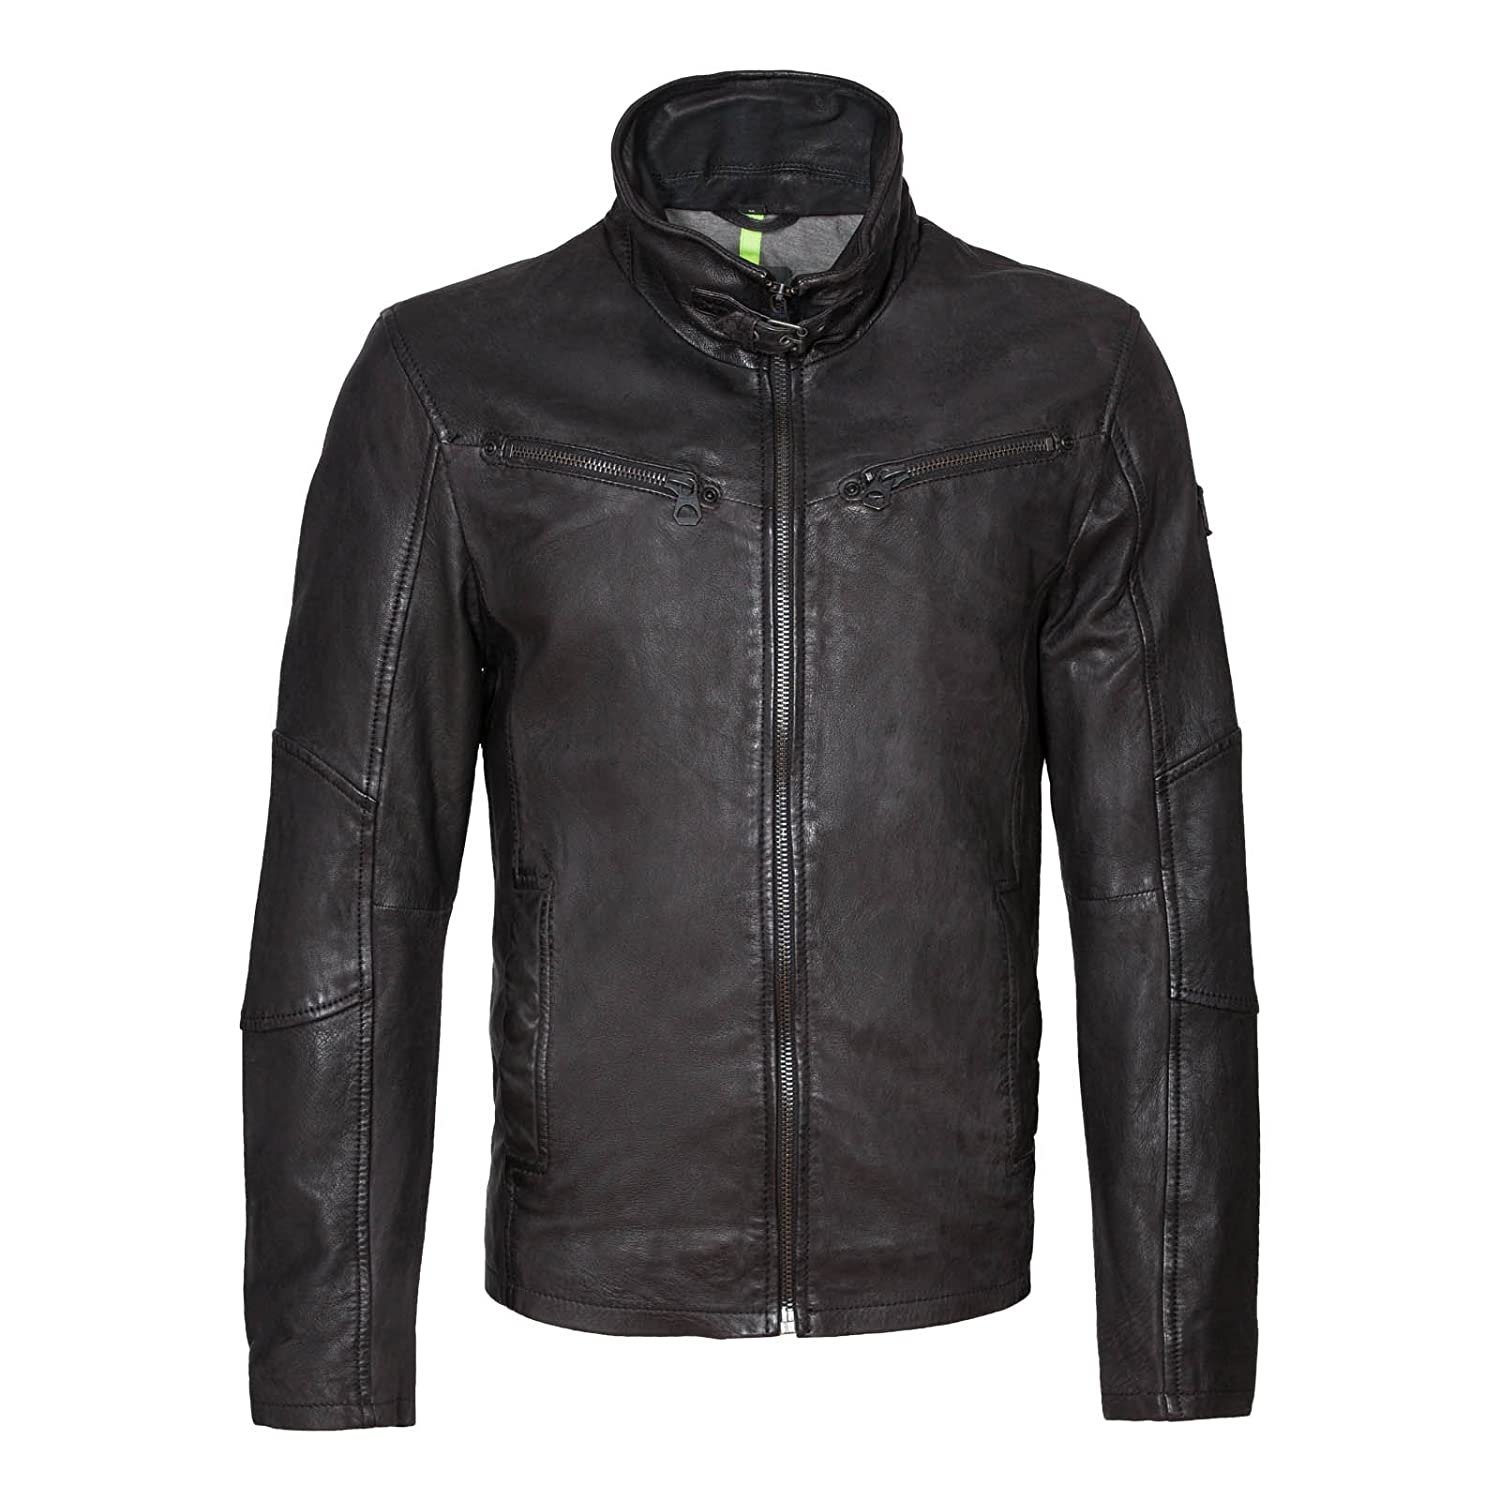 Gipsy by Mauritius Men's Jacket